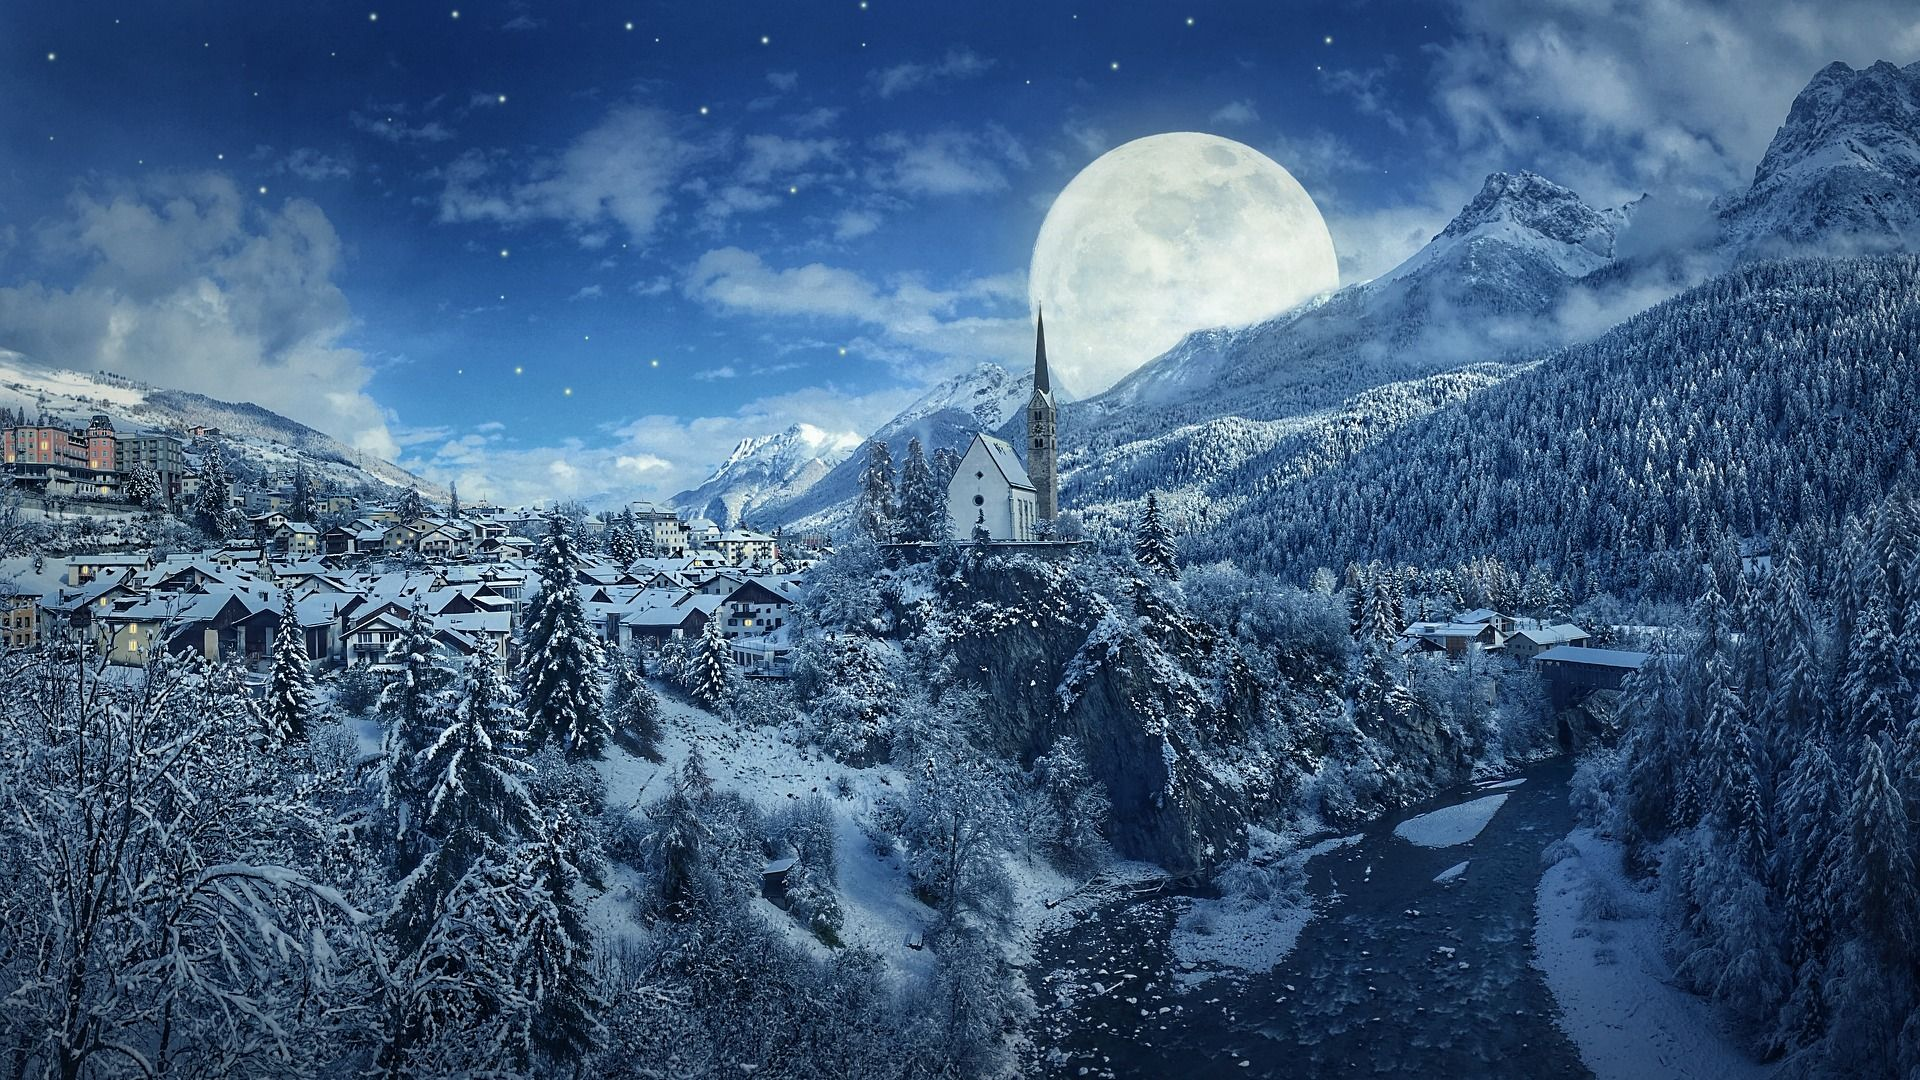 and,mountains,moon hd,winter,daydream,moonshine,coke,night,nighttime,snow,moon,dark,blank,outer space,quad,wintertime,mount,hd,space